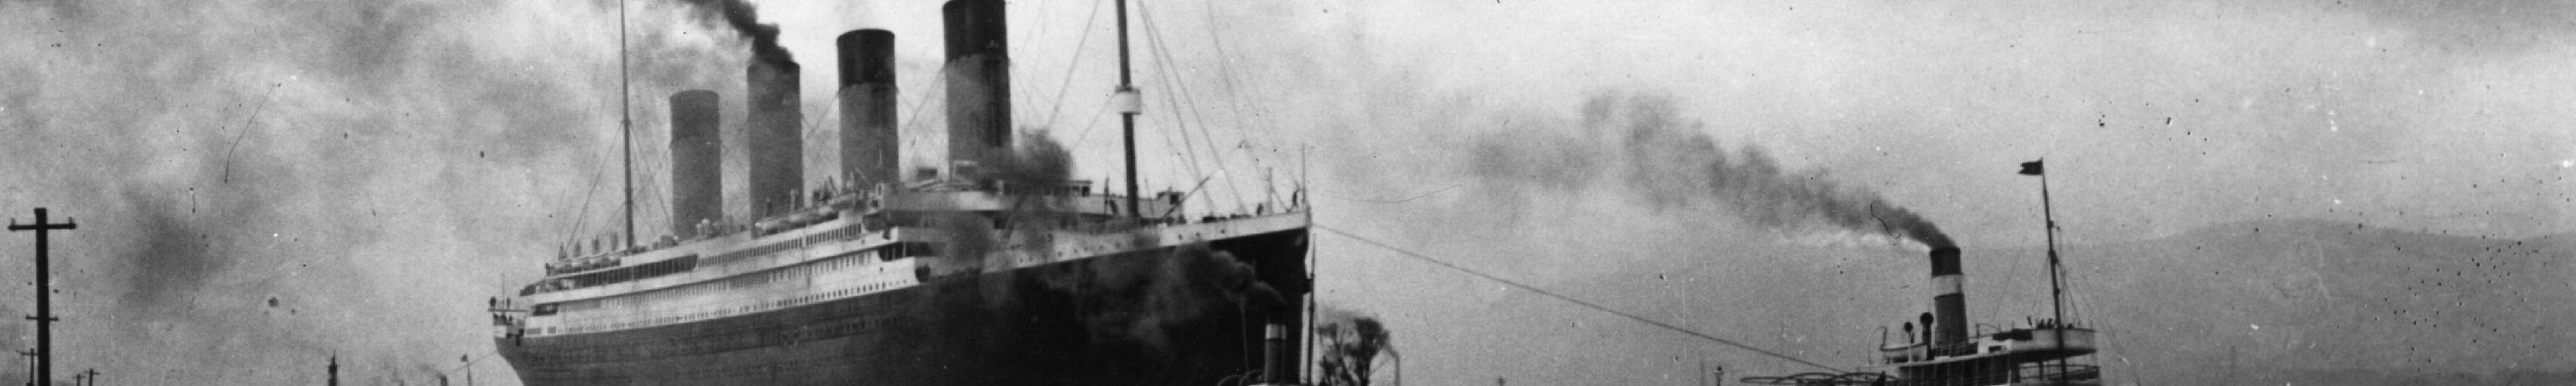 "15 April 1912: Following a collision with an iceberg, the ""unsinkable"" Titanic went down, with the loss of 1,500 lives. Even today, the sinking of the Titanic is considered one of the greatest maritime disasters of all time"